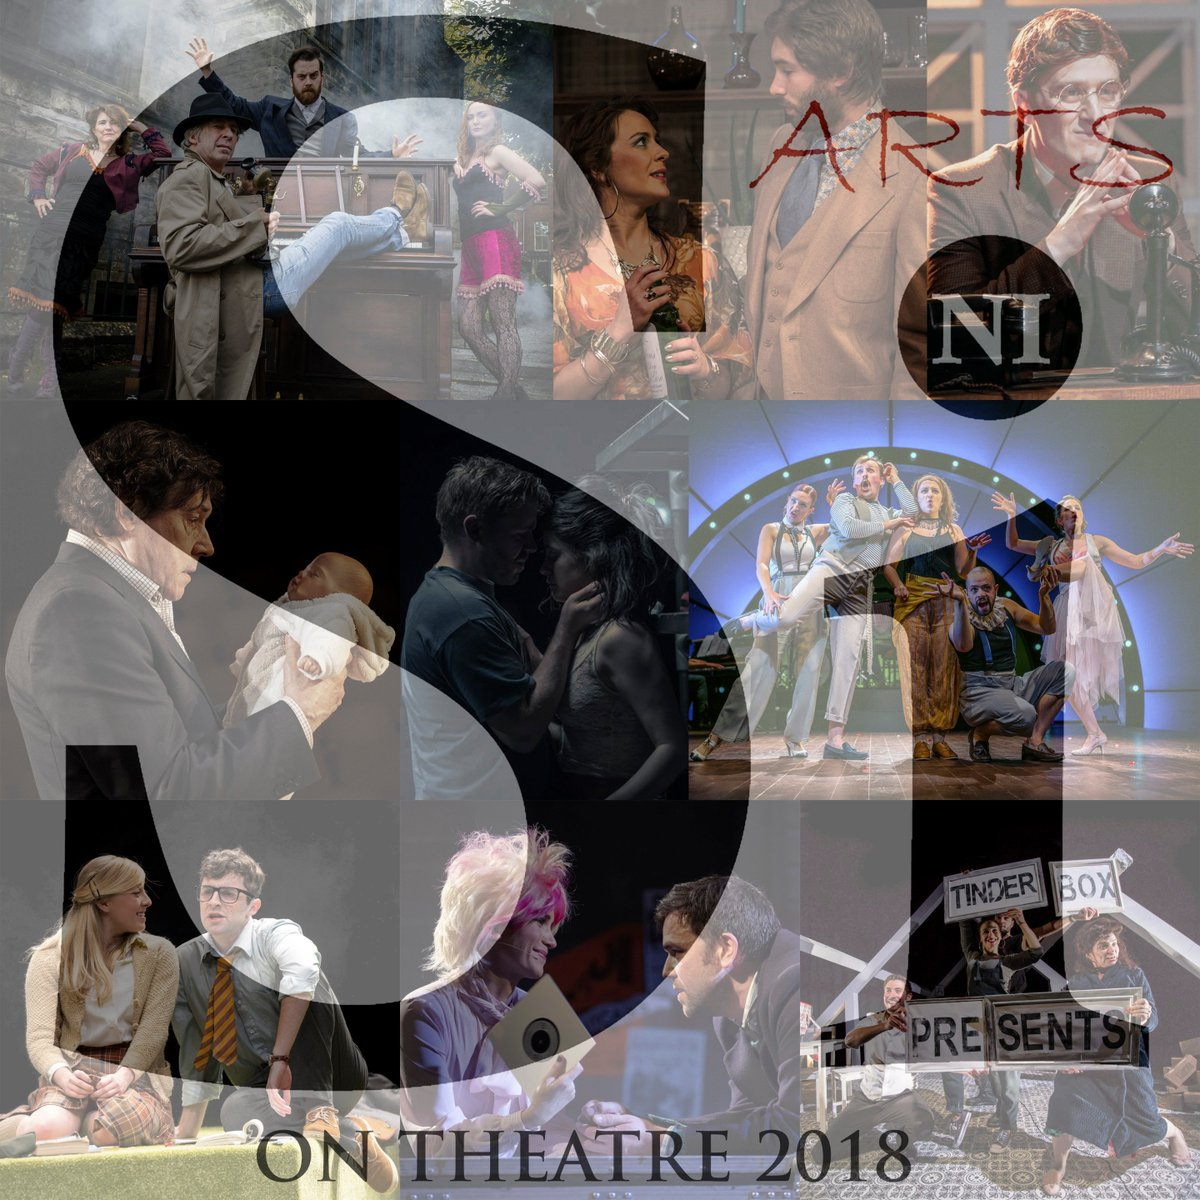 test Twitter Media - My reflections on @Theatre_NI in 2018, featuring a full list of nominees for and winners of my theatre awards for the year, originally announced live last month. #Theatre #NITheatre #ArtsMatterNI   https://t.co/VgoDLaYP9Q https://t.co/sKLHqaiYmh